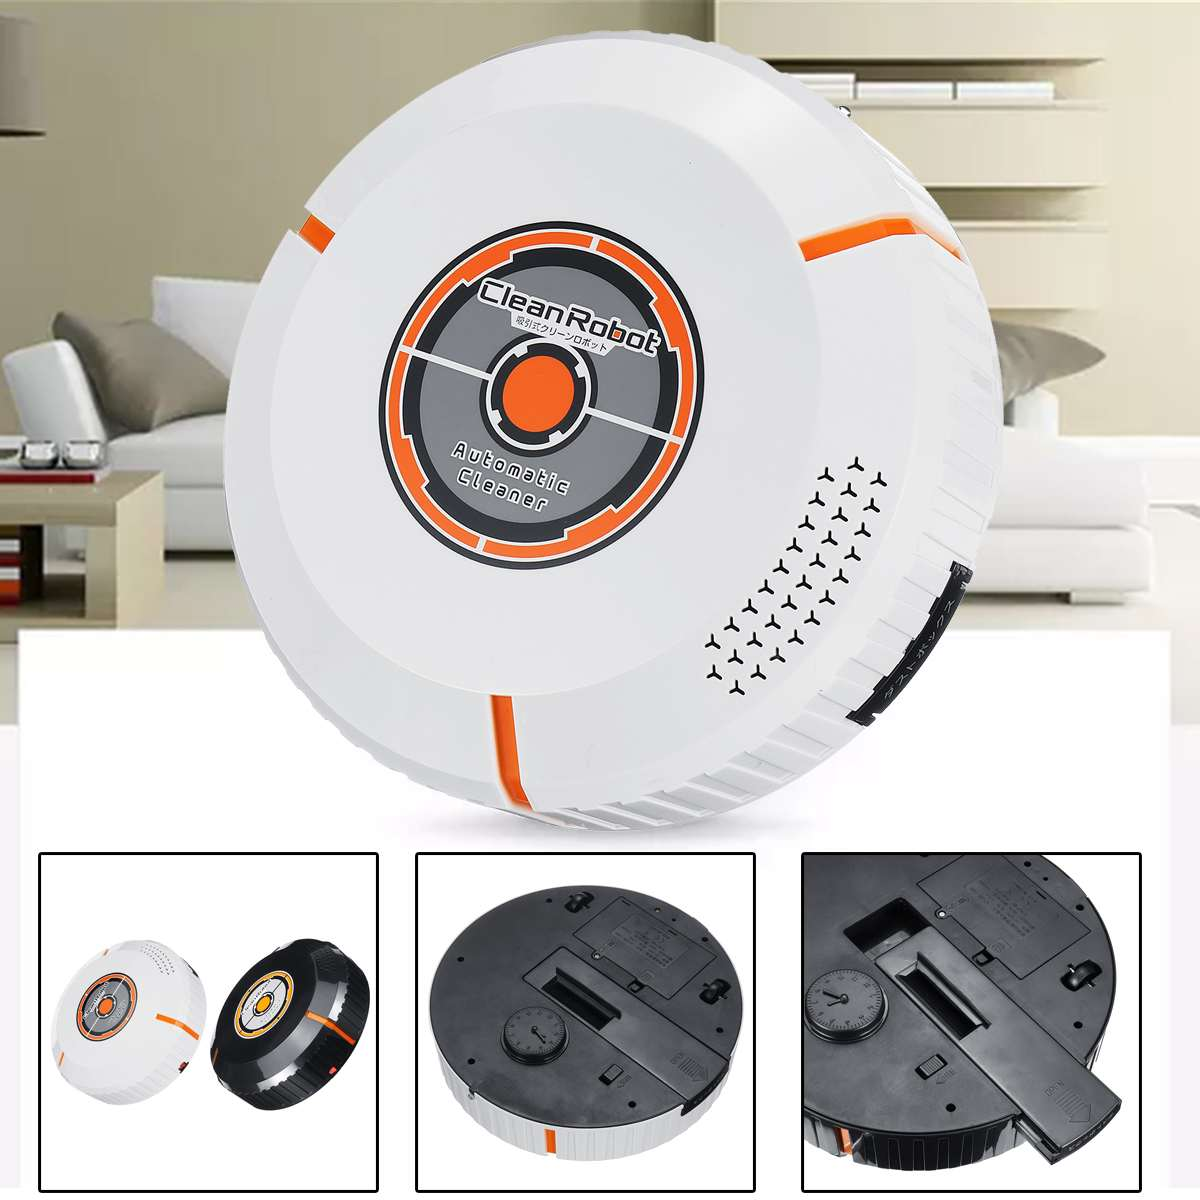 Intelligent ABS Vacuum Cleaner Robot Sweep Wet Suction Mop Automatic Recharge for Pet hair and Hard Floor Powerful SuctionIntelligent ABS Vacuum Cleaner Robot Sweep Wet Suction Mop Automatic Recharge for Pet hair and Hard Floor Powerful Suction